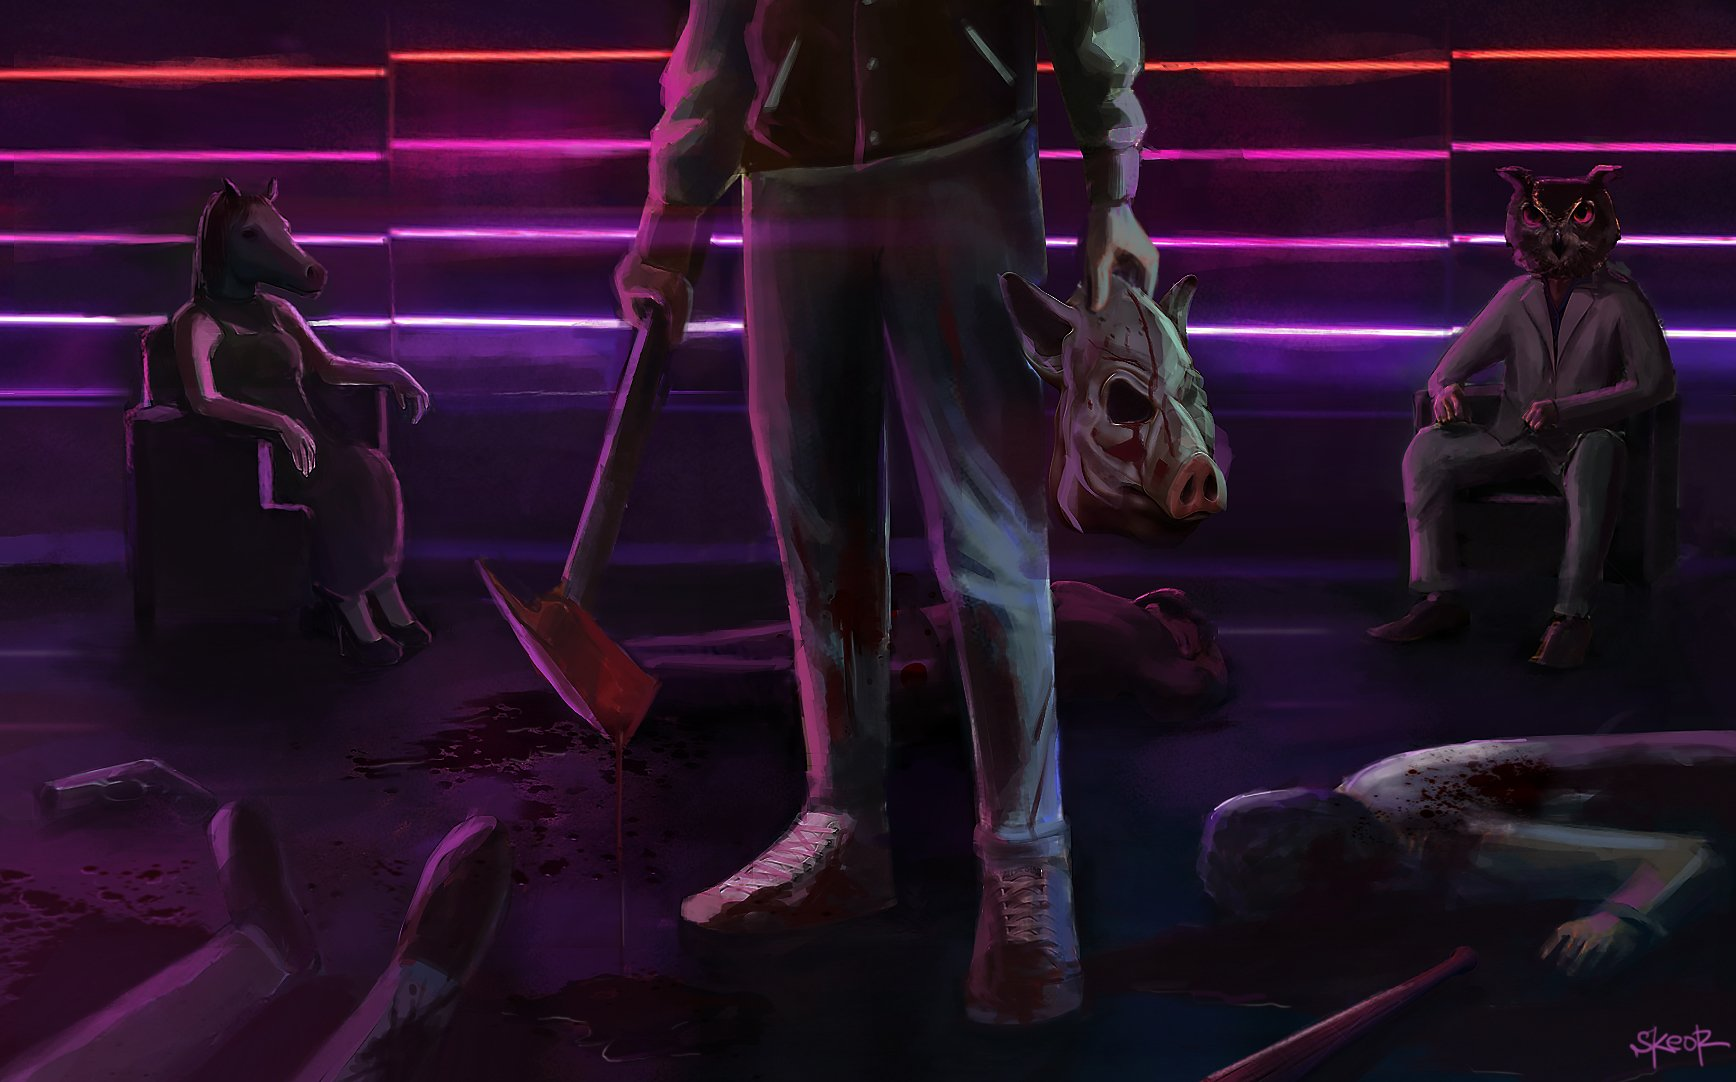 1920 Car Synthwave Wallpaper Hotline Miami 2 Wrong Number Wallpaper And Background